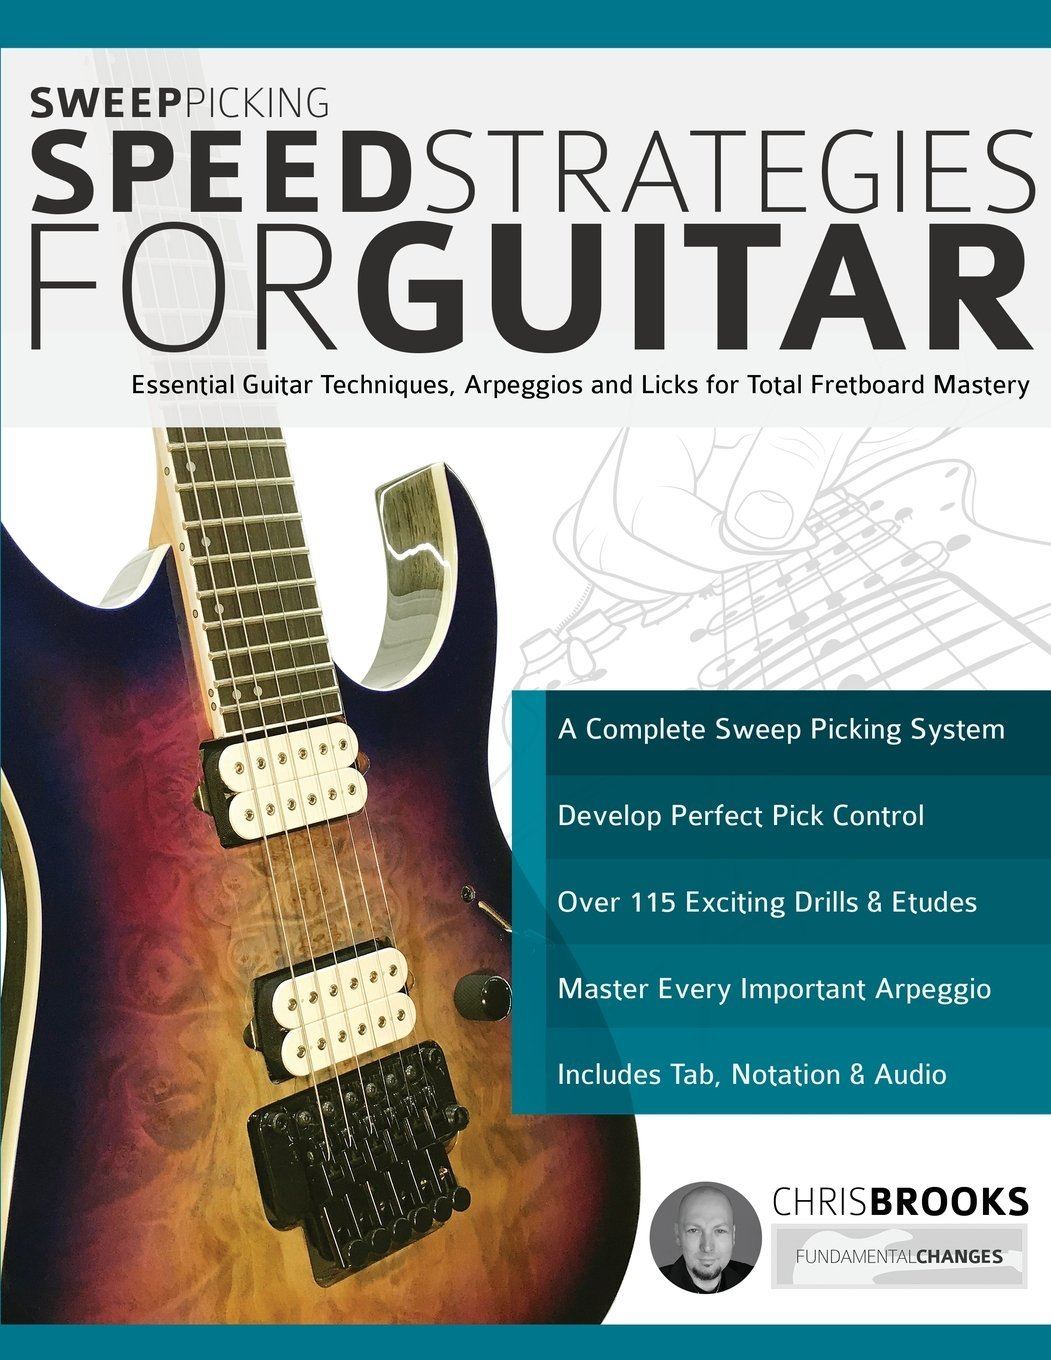 sweep-picking-speed-strategies-for-guitar-essential-guitar-techniques-arpeggios-and-licks-for-total-fretboard-mastery